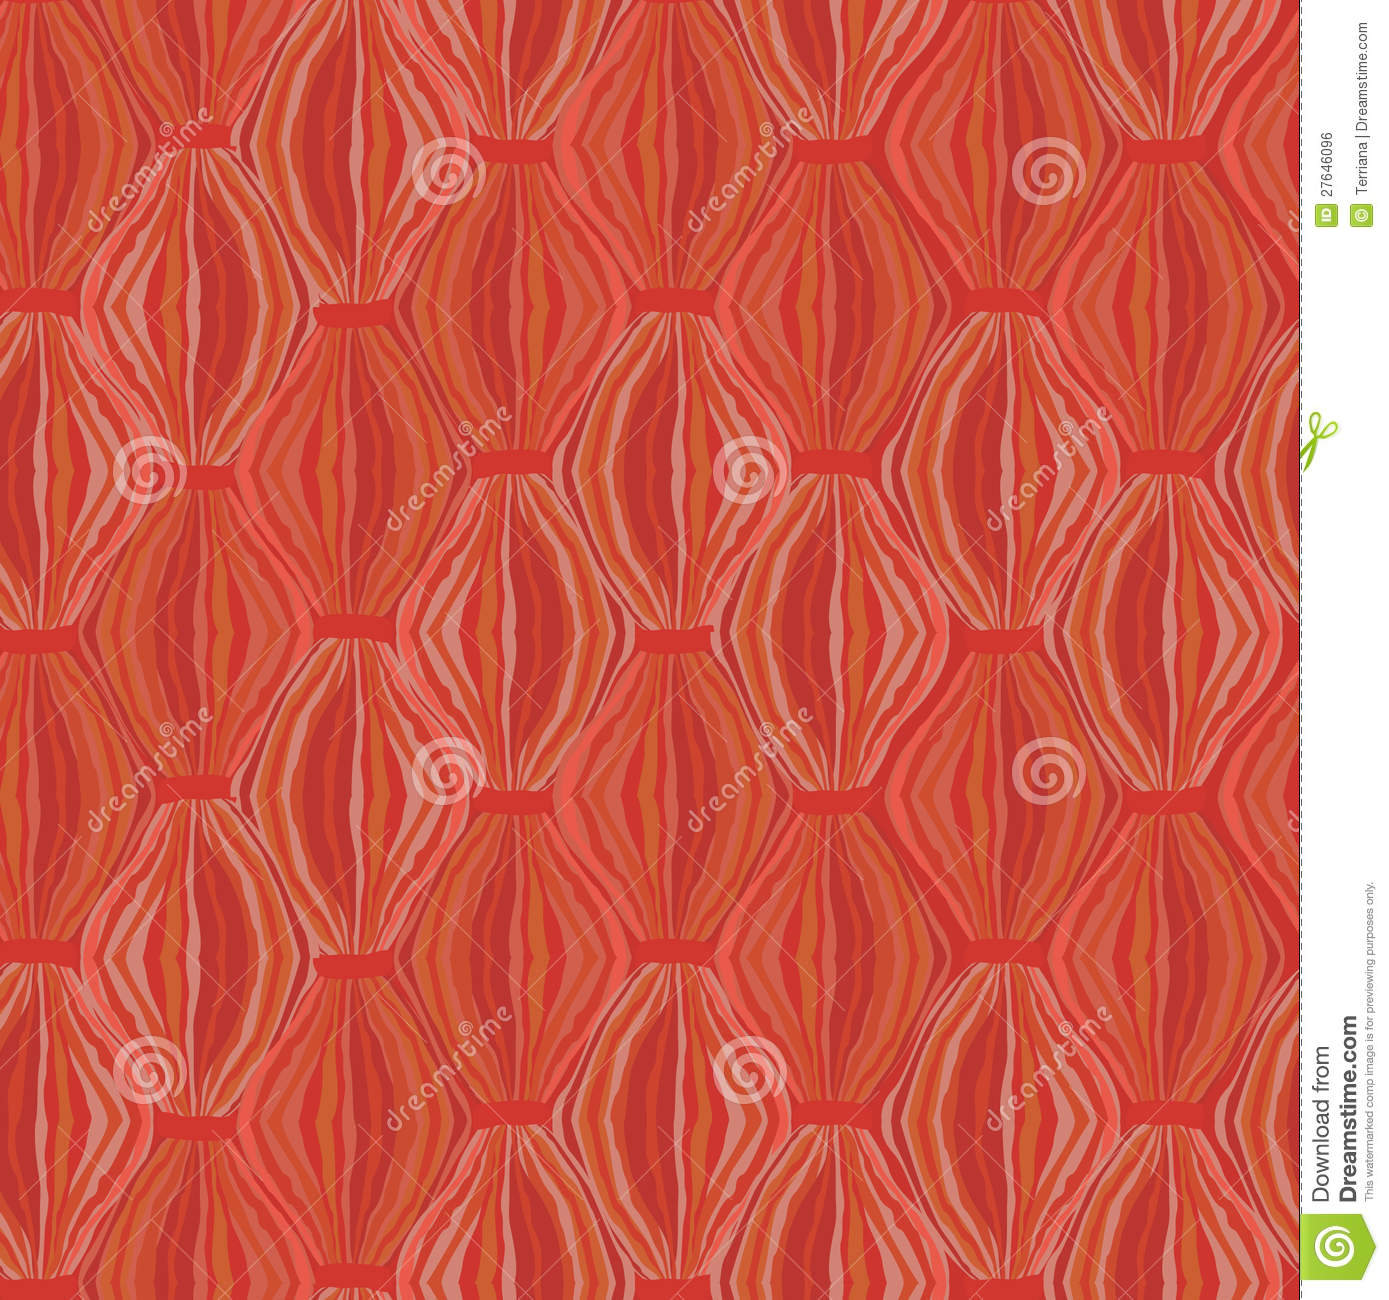 Fabric Seamless Background Royalty Free Stock Image - Image: 27646096